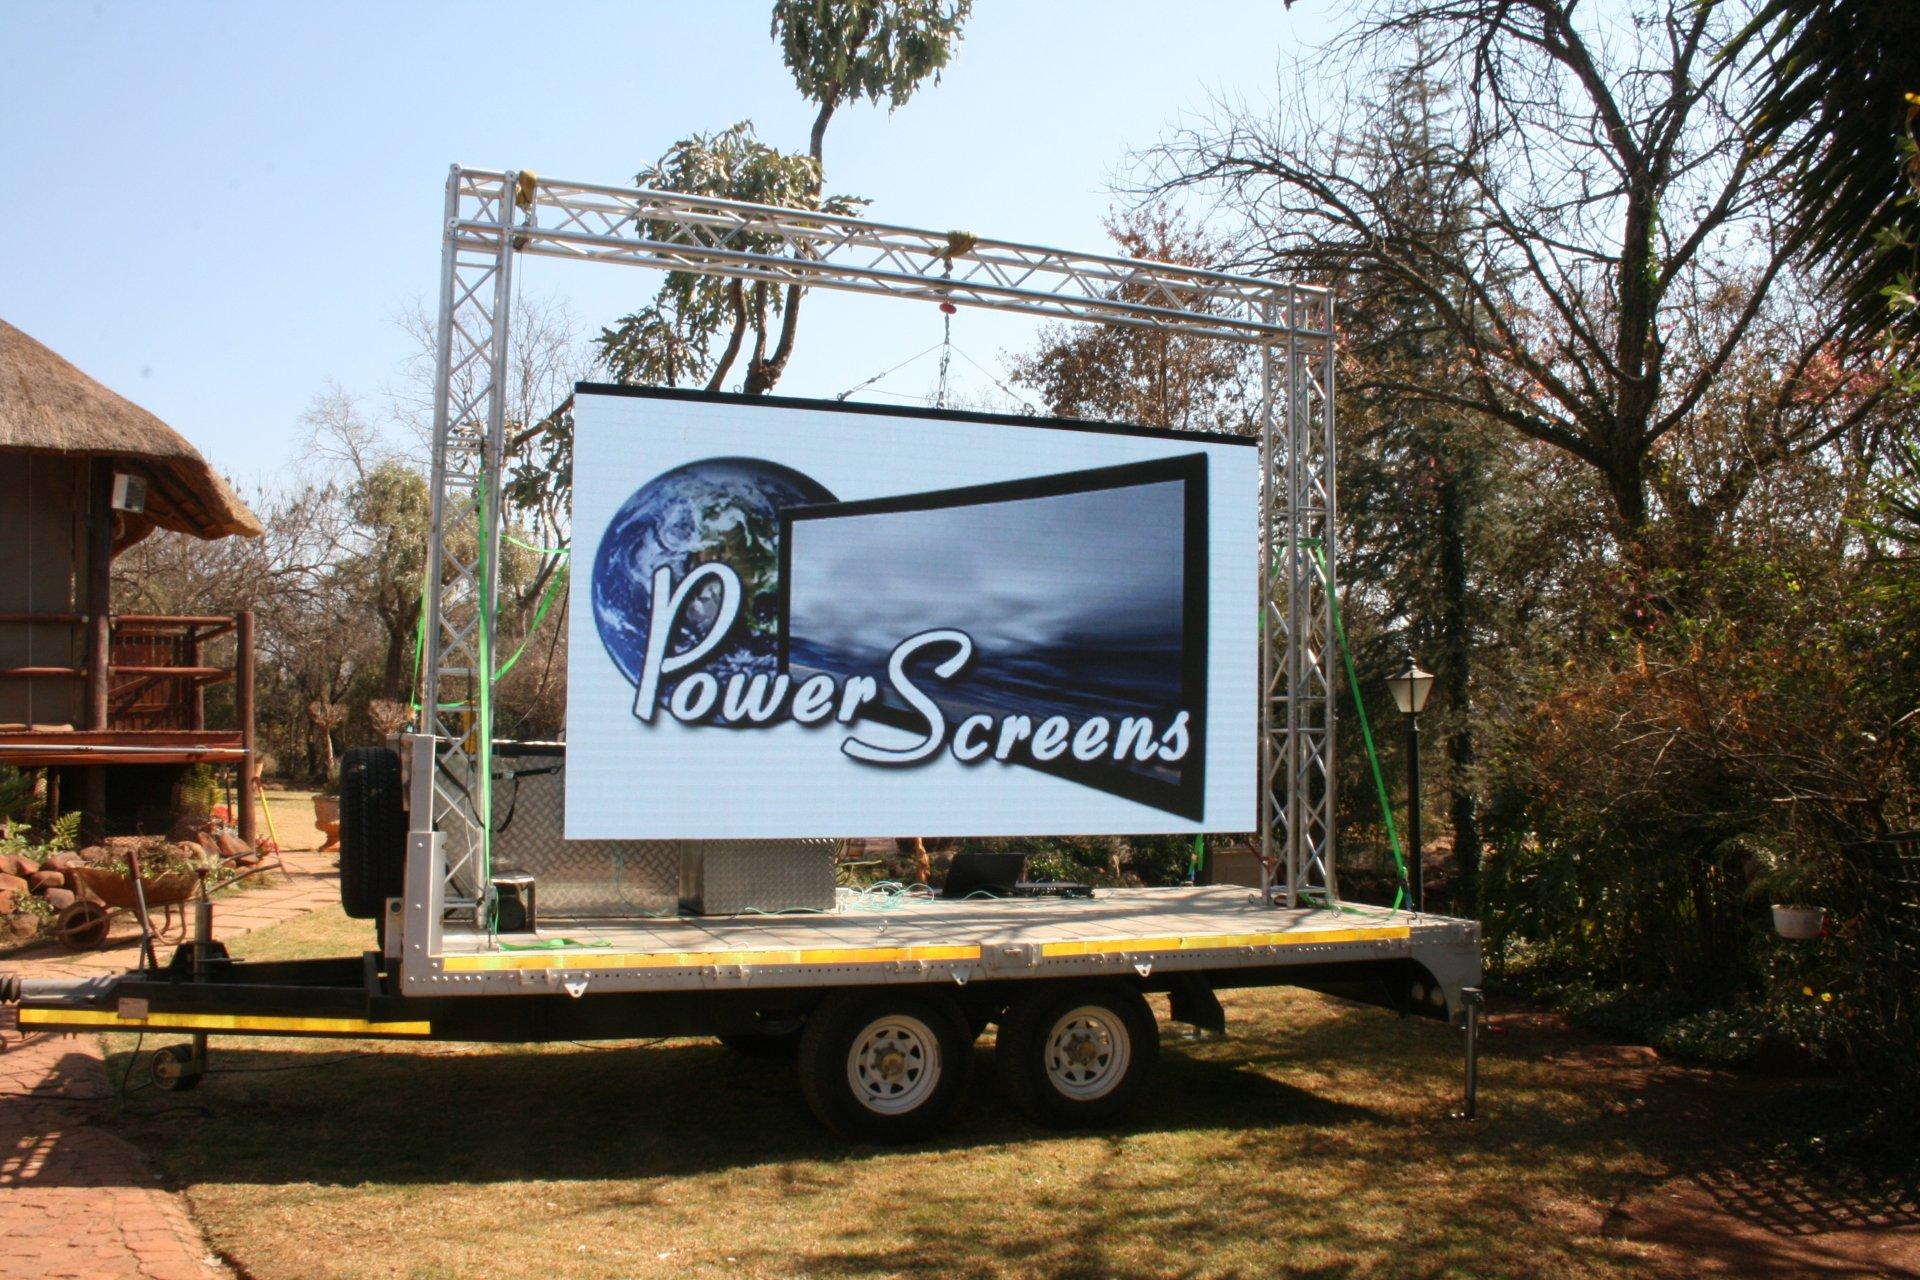 Power Screens   Outdoor LED Displays